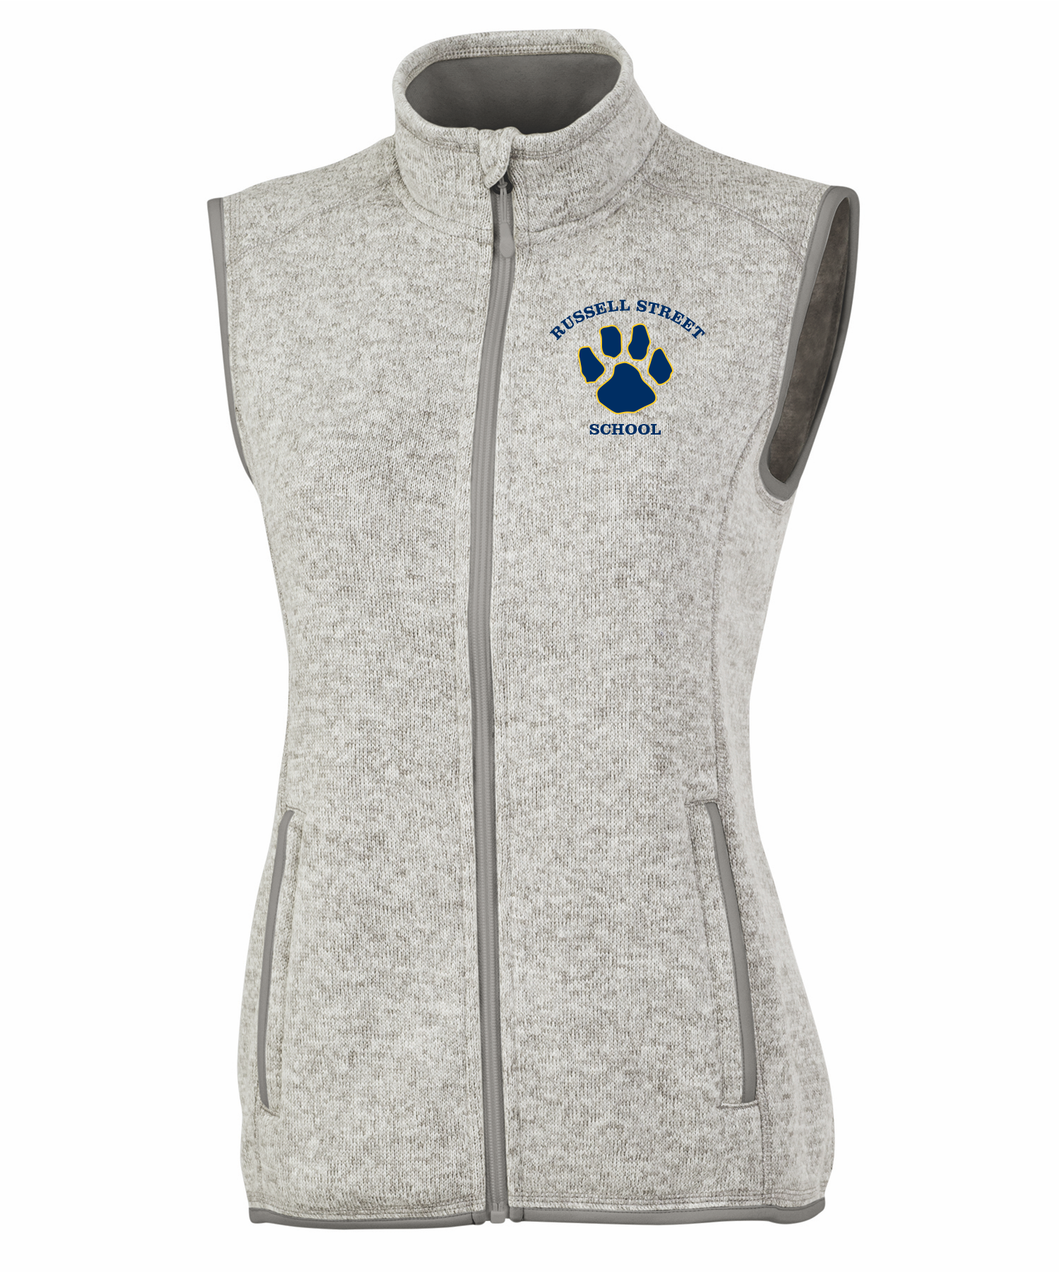 Russell Street School Heathered Ladies Vest / Charles River 5722